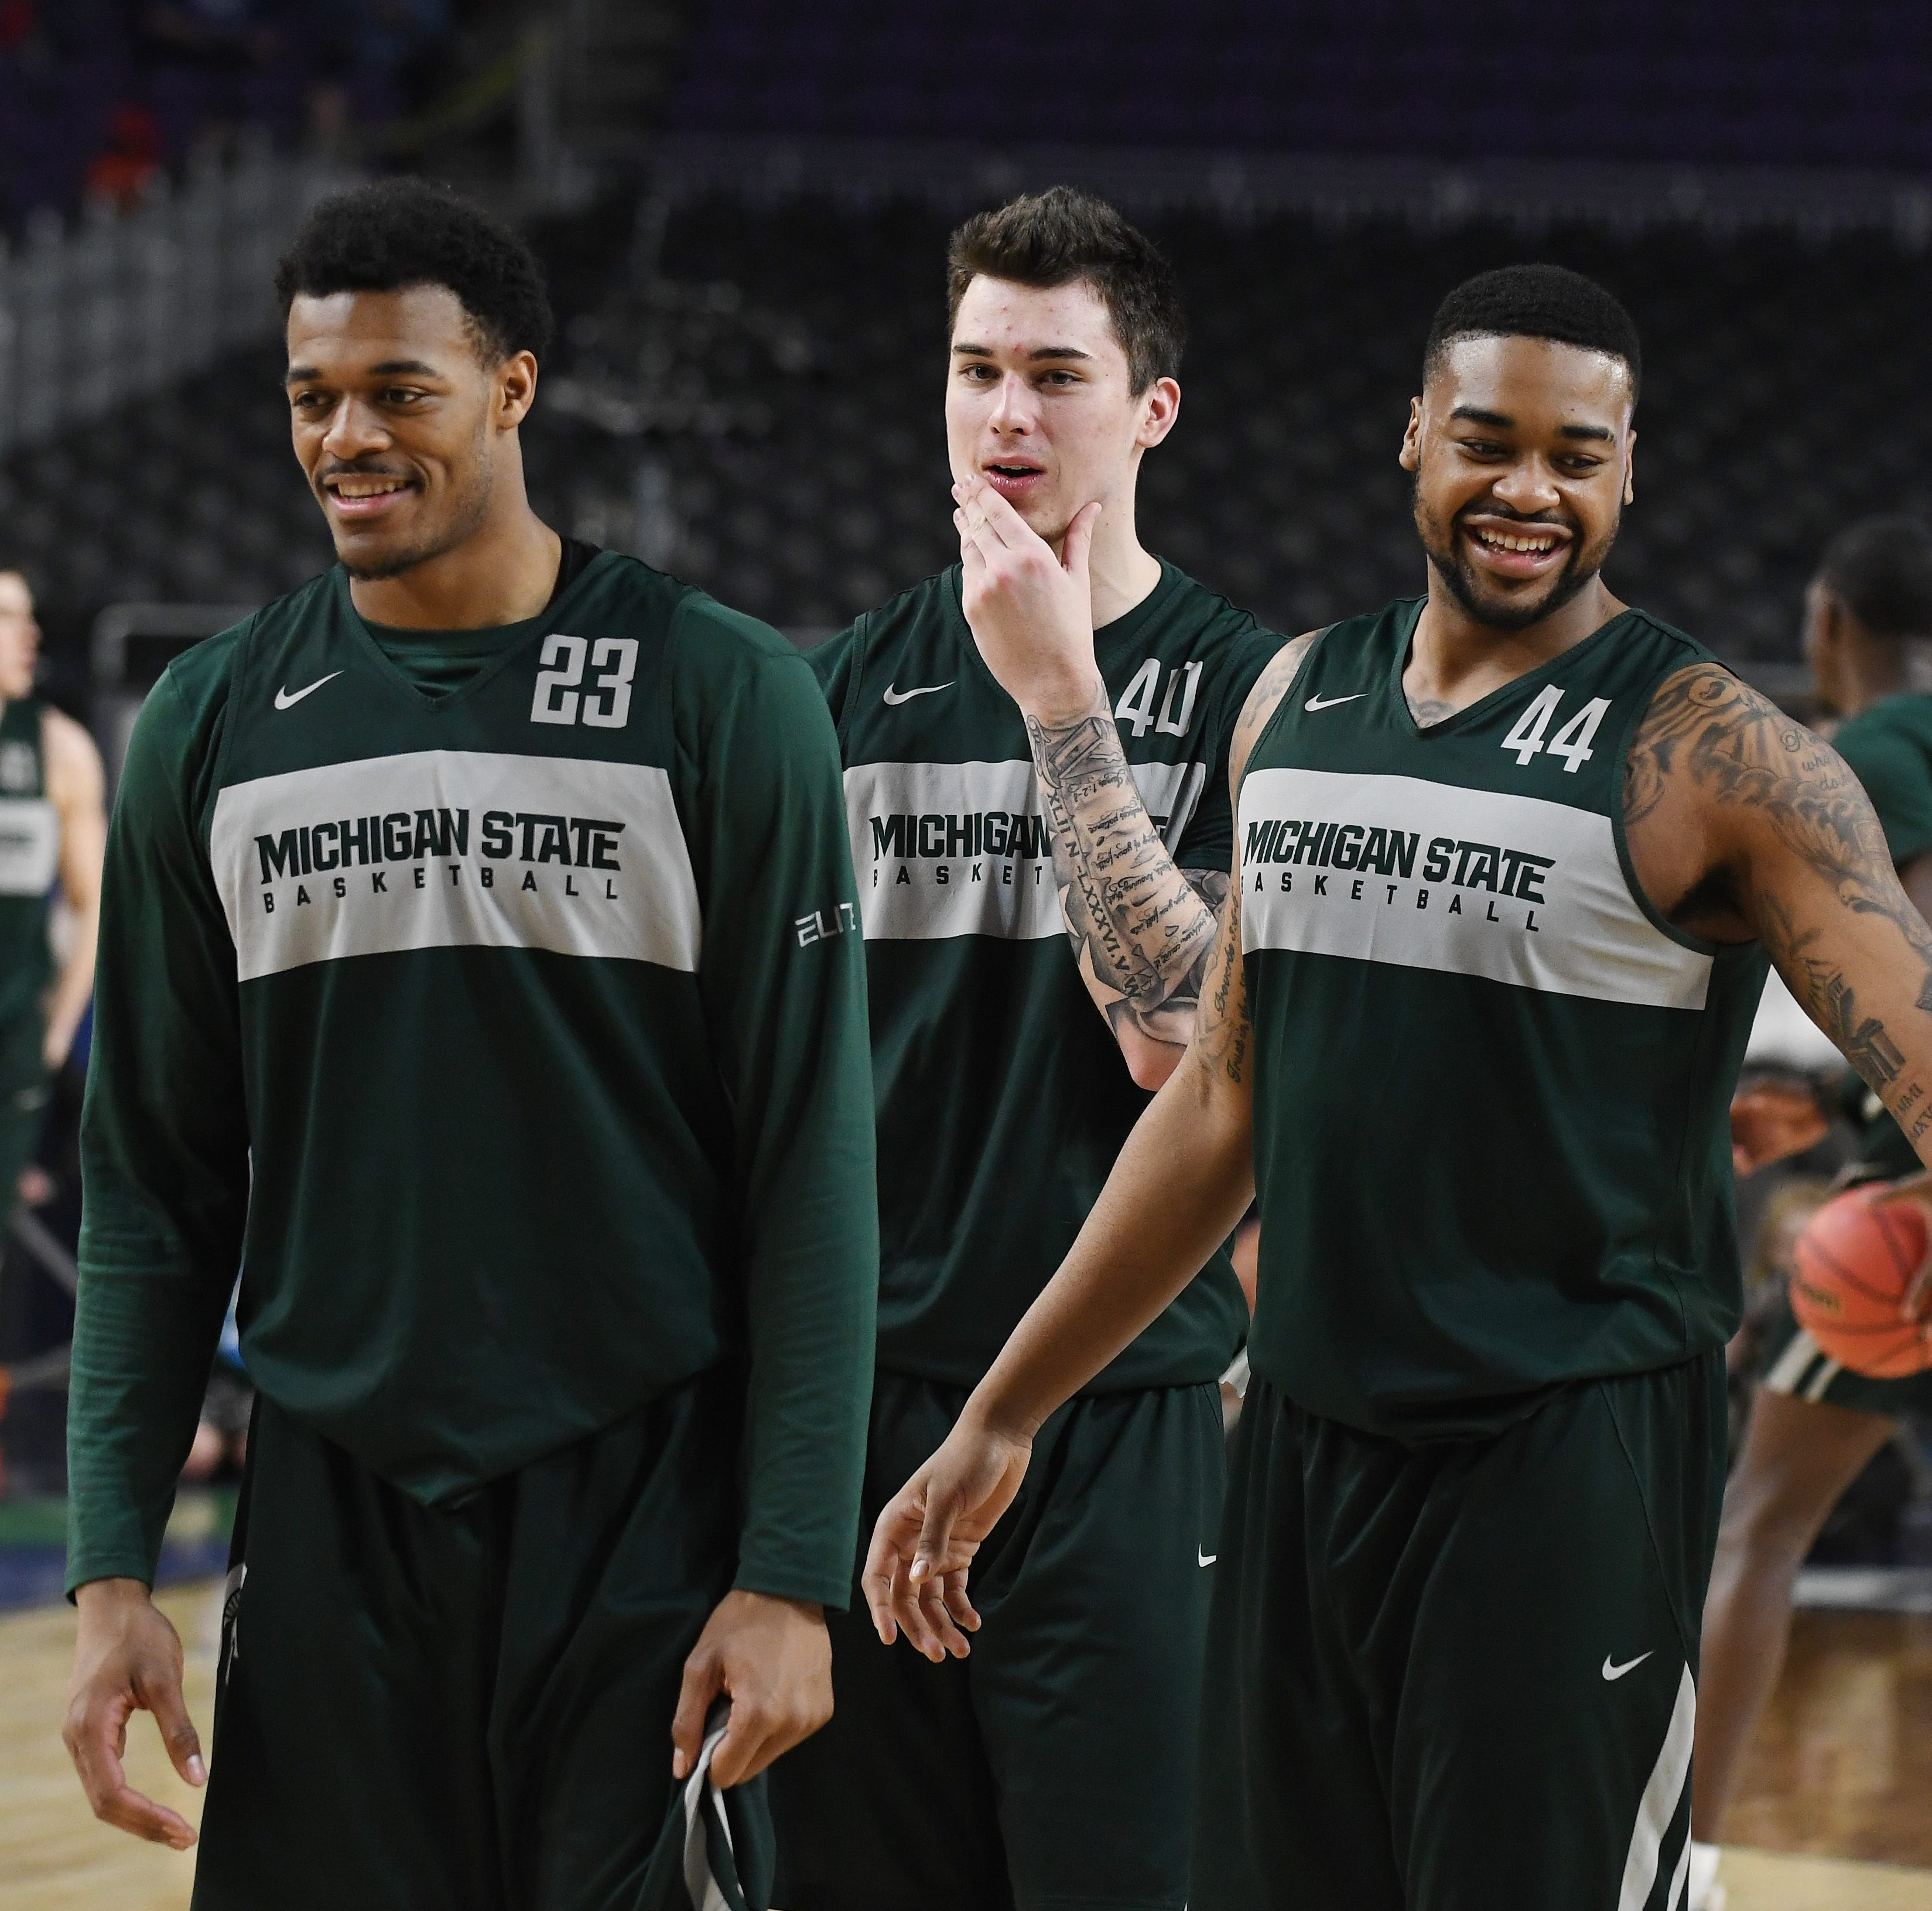 Michigan State's hopes rest on solving Texas Tech's tenacious defense